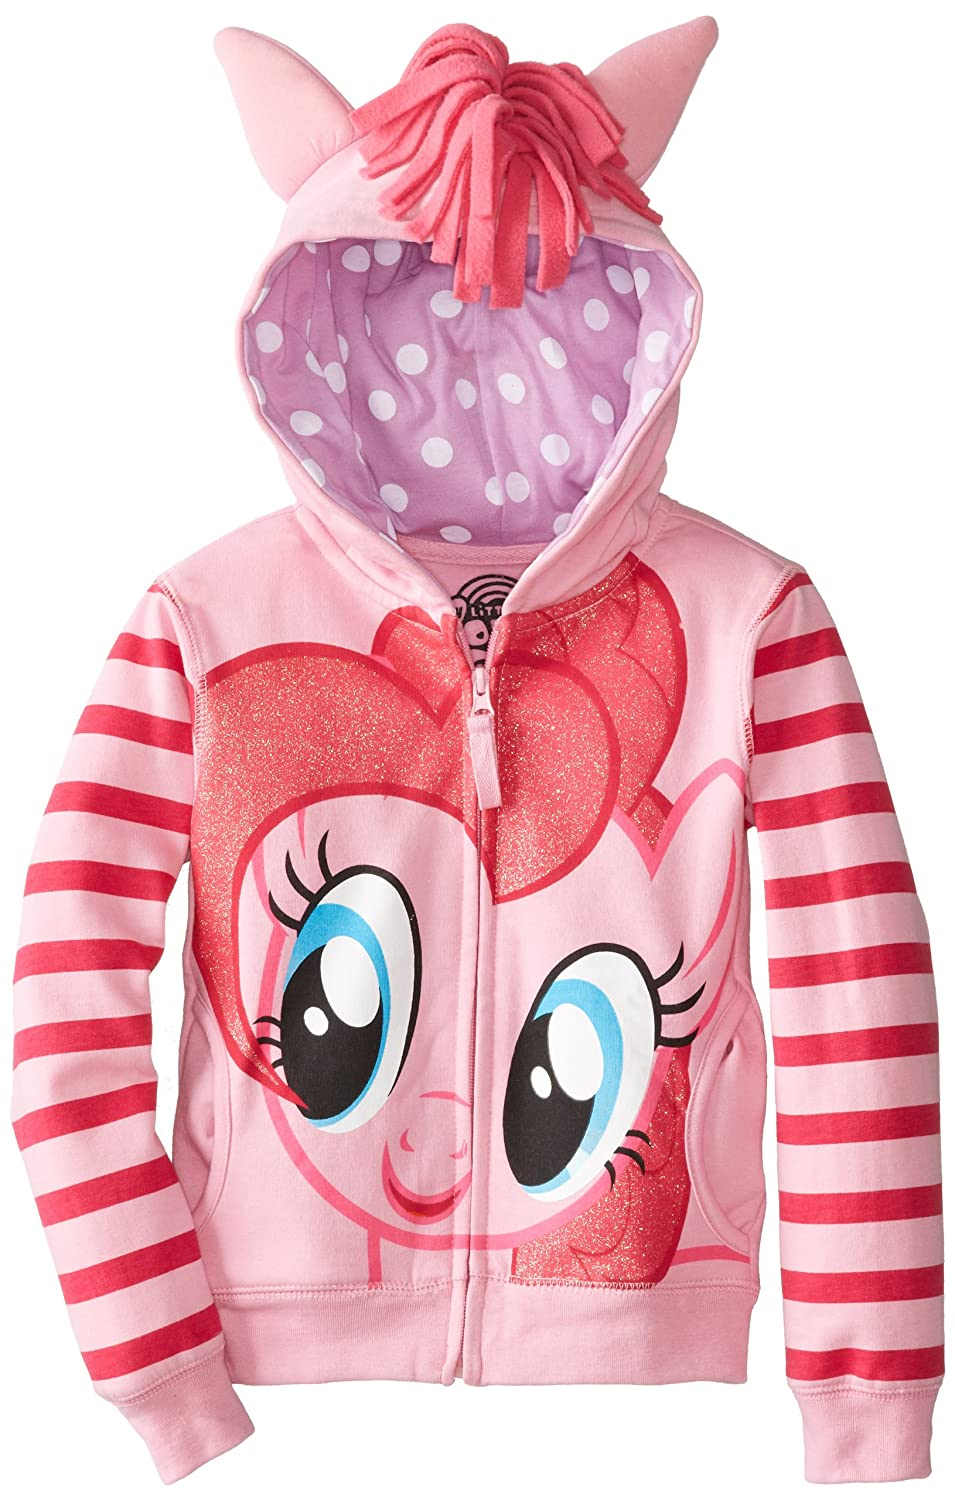 My Little Pony Girls' Pinky Pie Hoodie Freeze Children' s Apparel LJ1H017-6S15